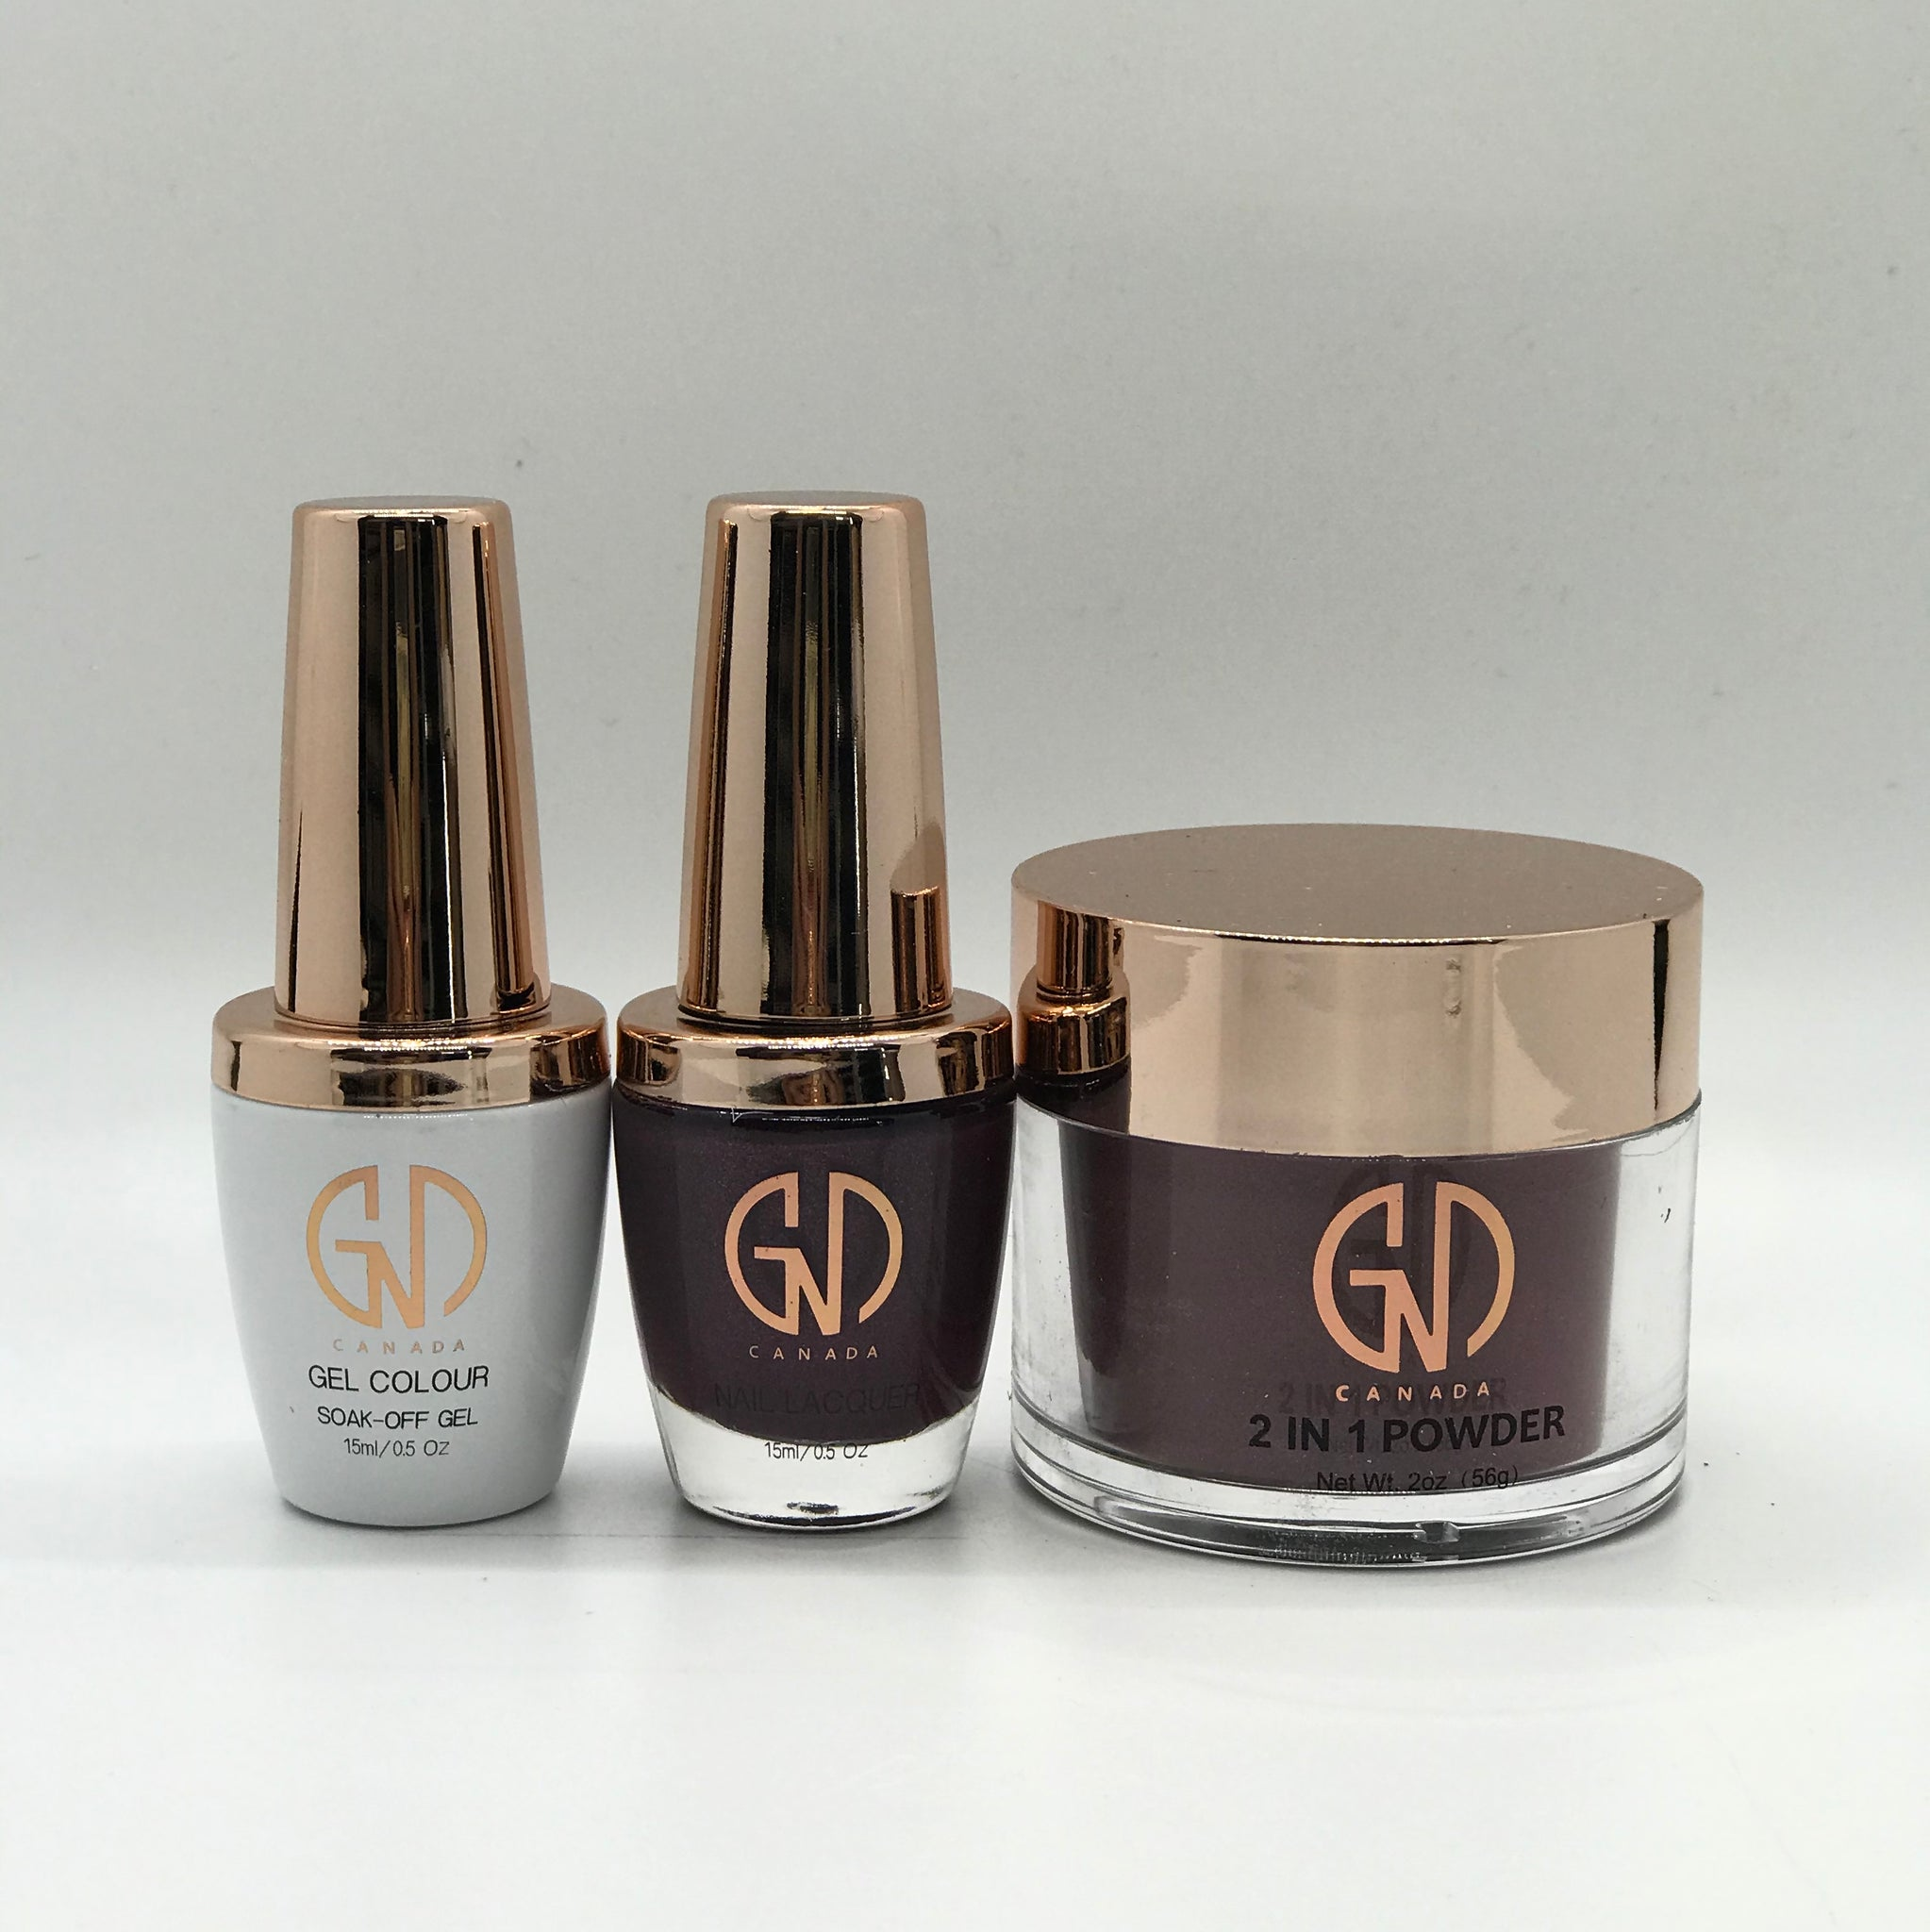 3-in-1 Nail Combo: Dip, Gel & Lacquer #203 GND Canada® - CM Nails & Beauty Supply